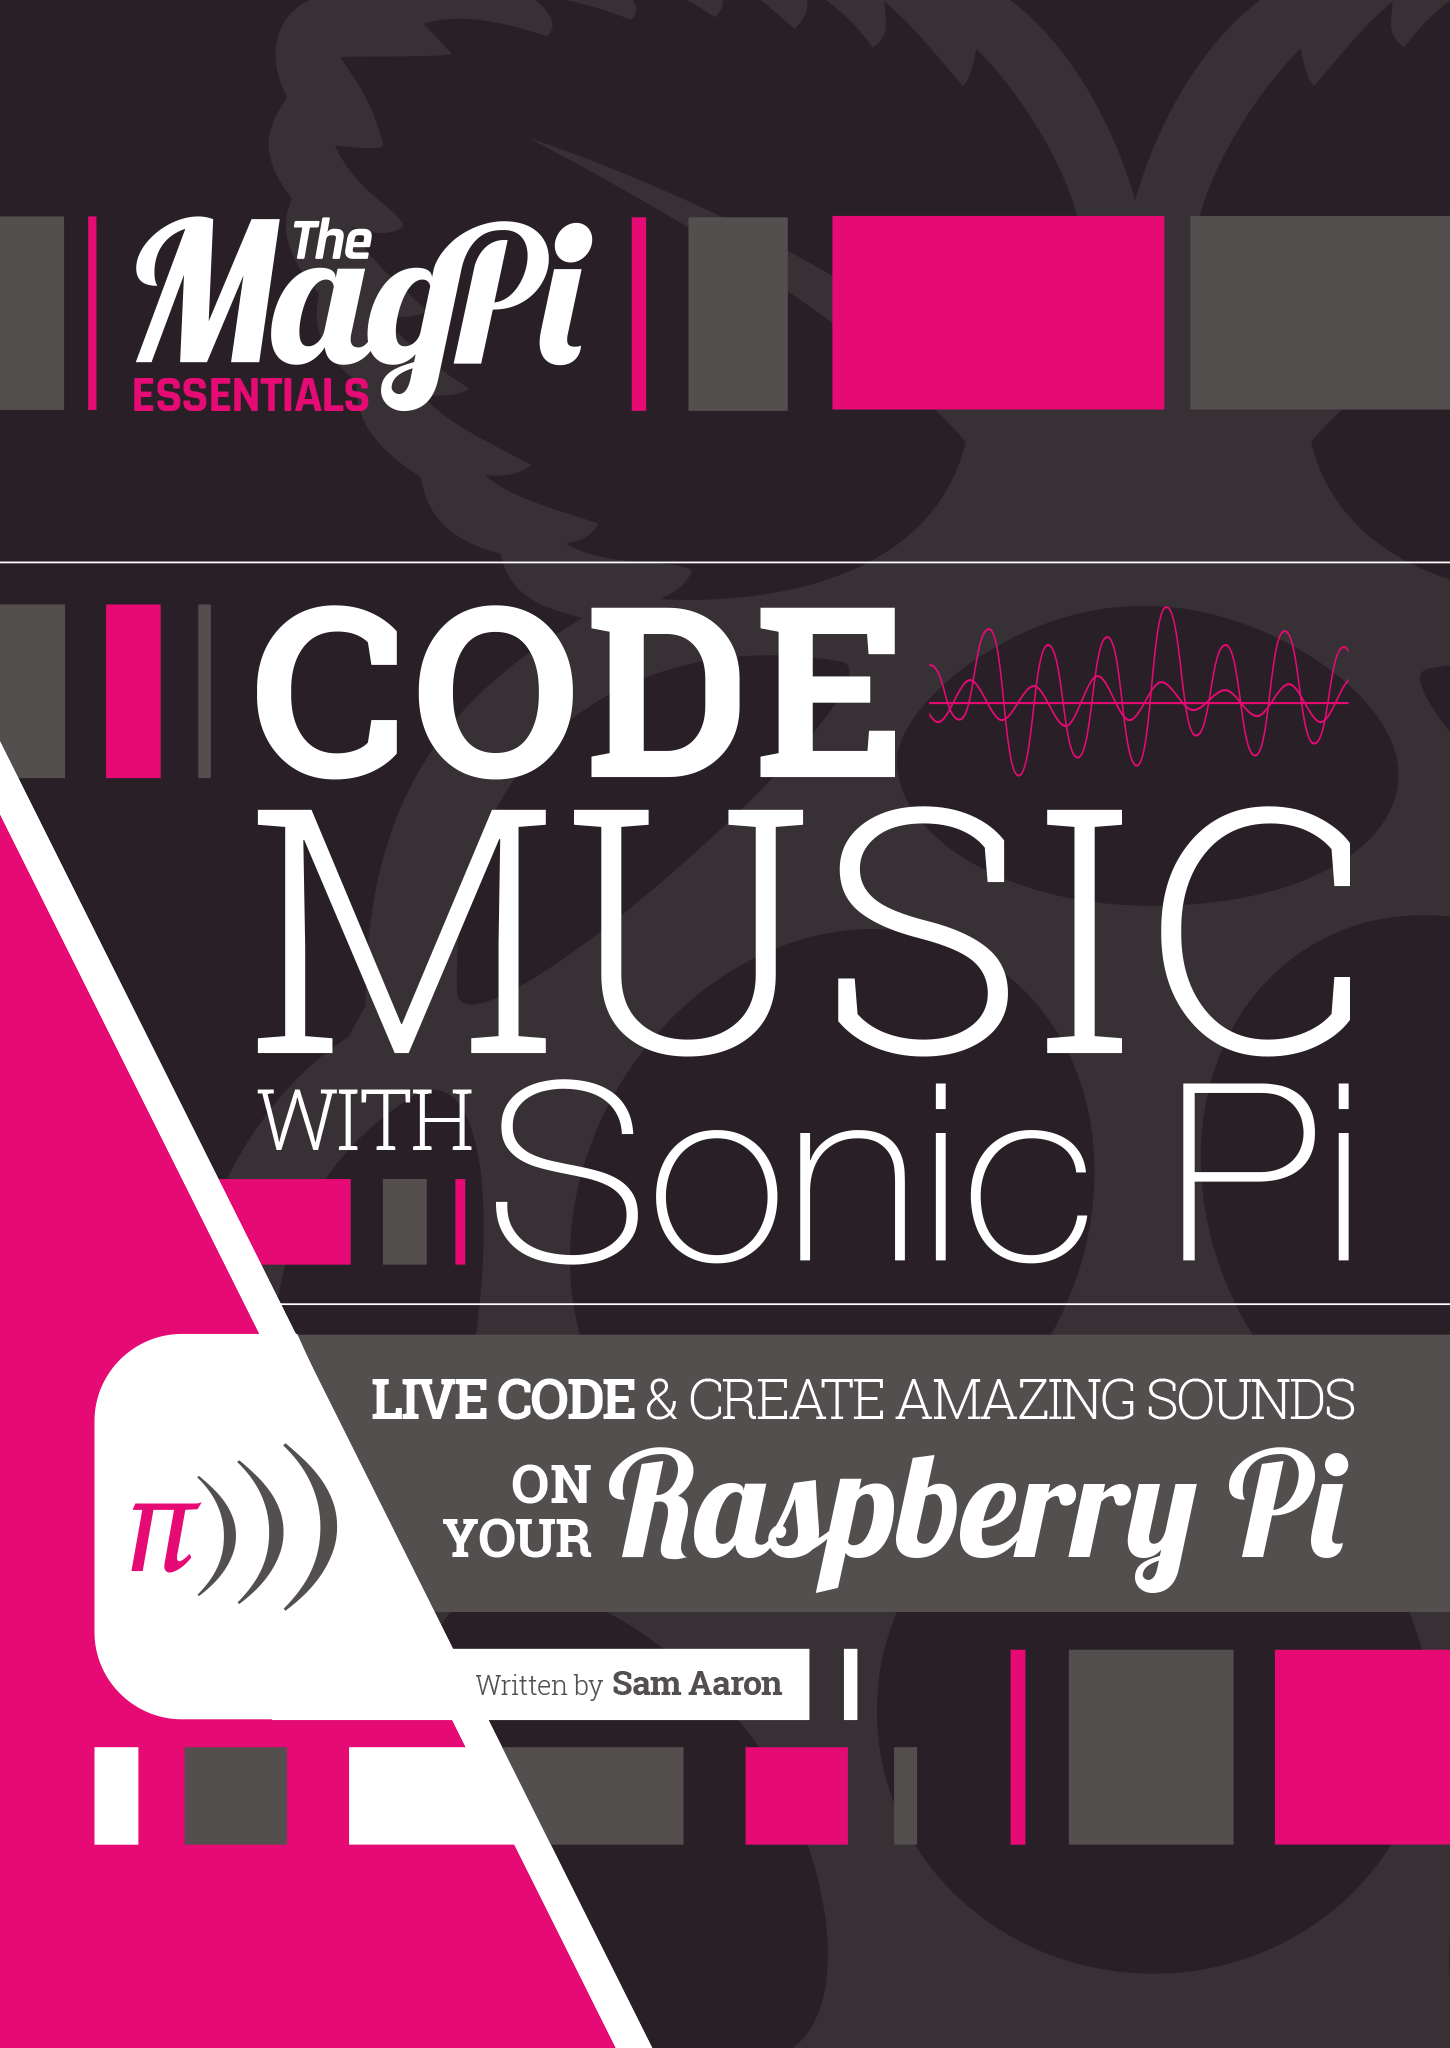 Get the Sonic Pi essentials book to learn more about Sonic Pi